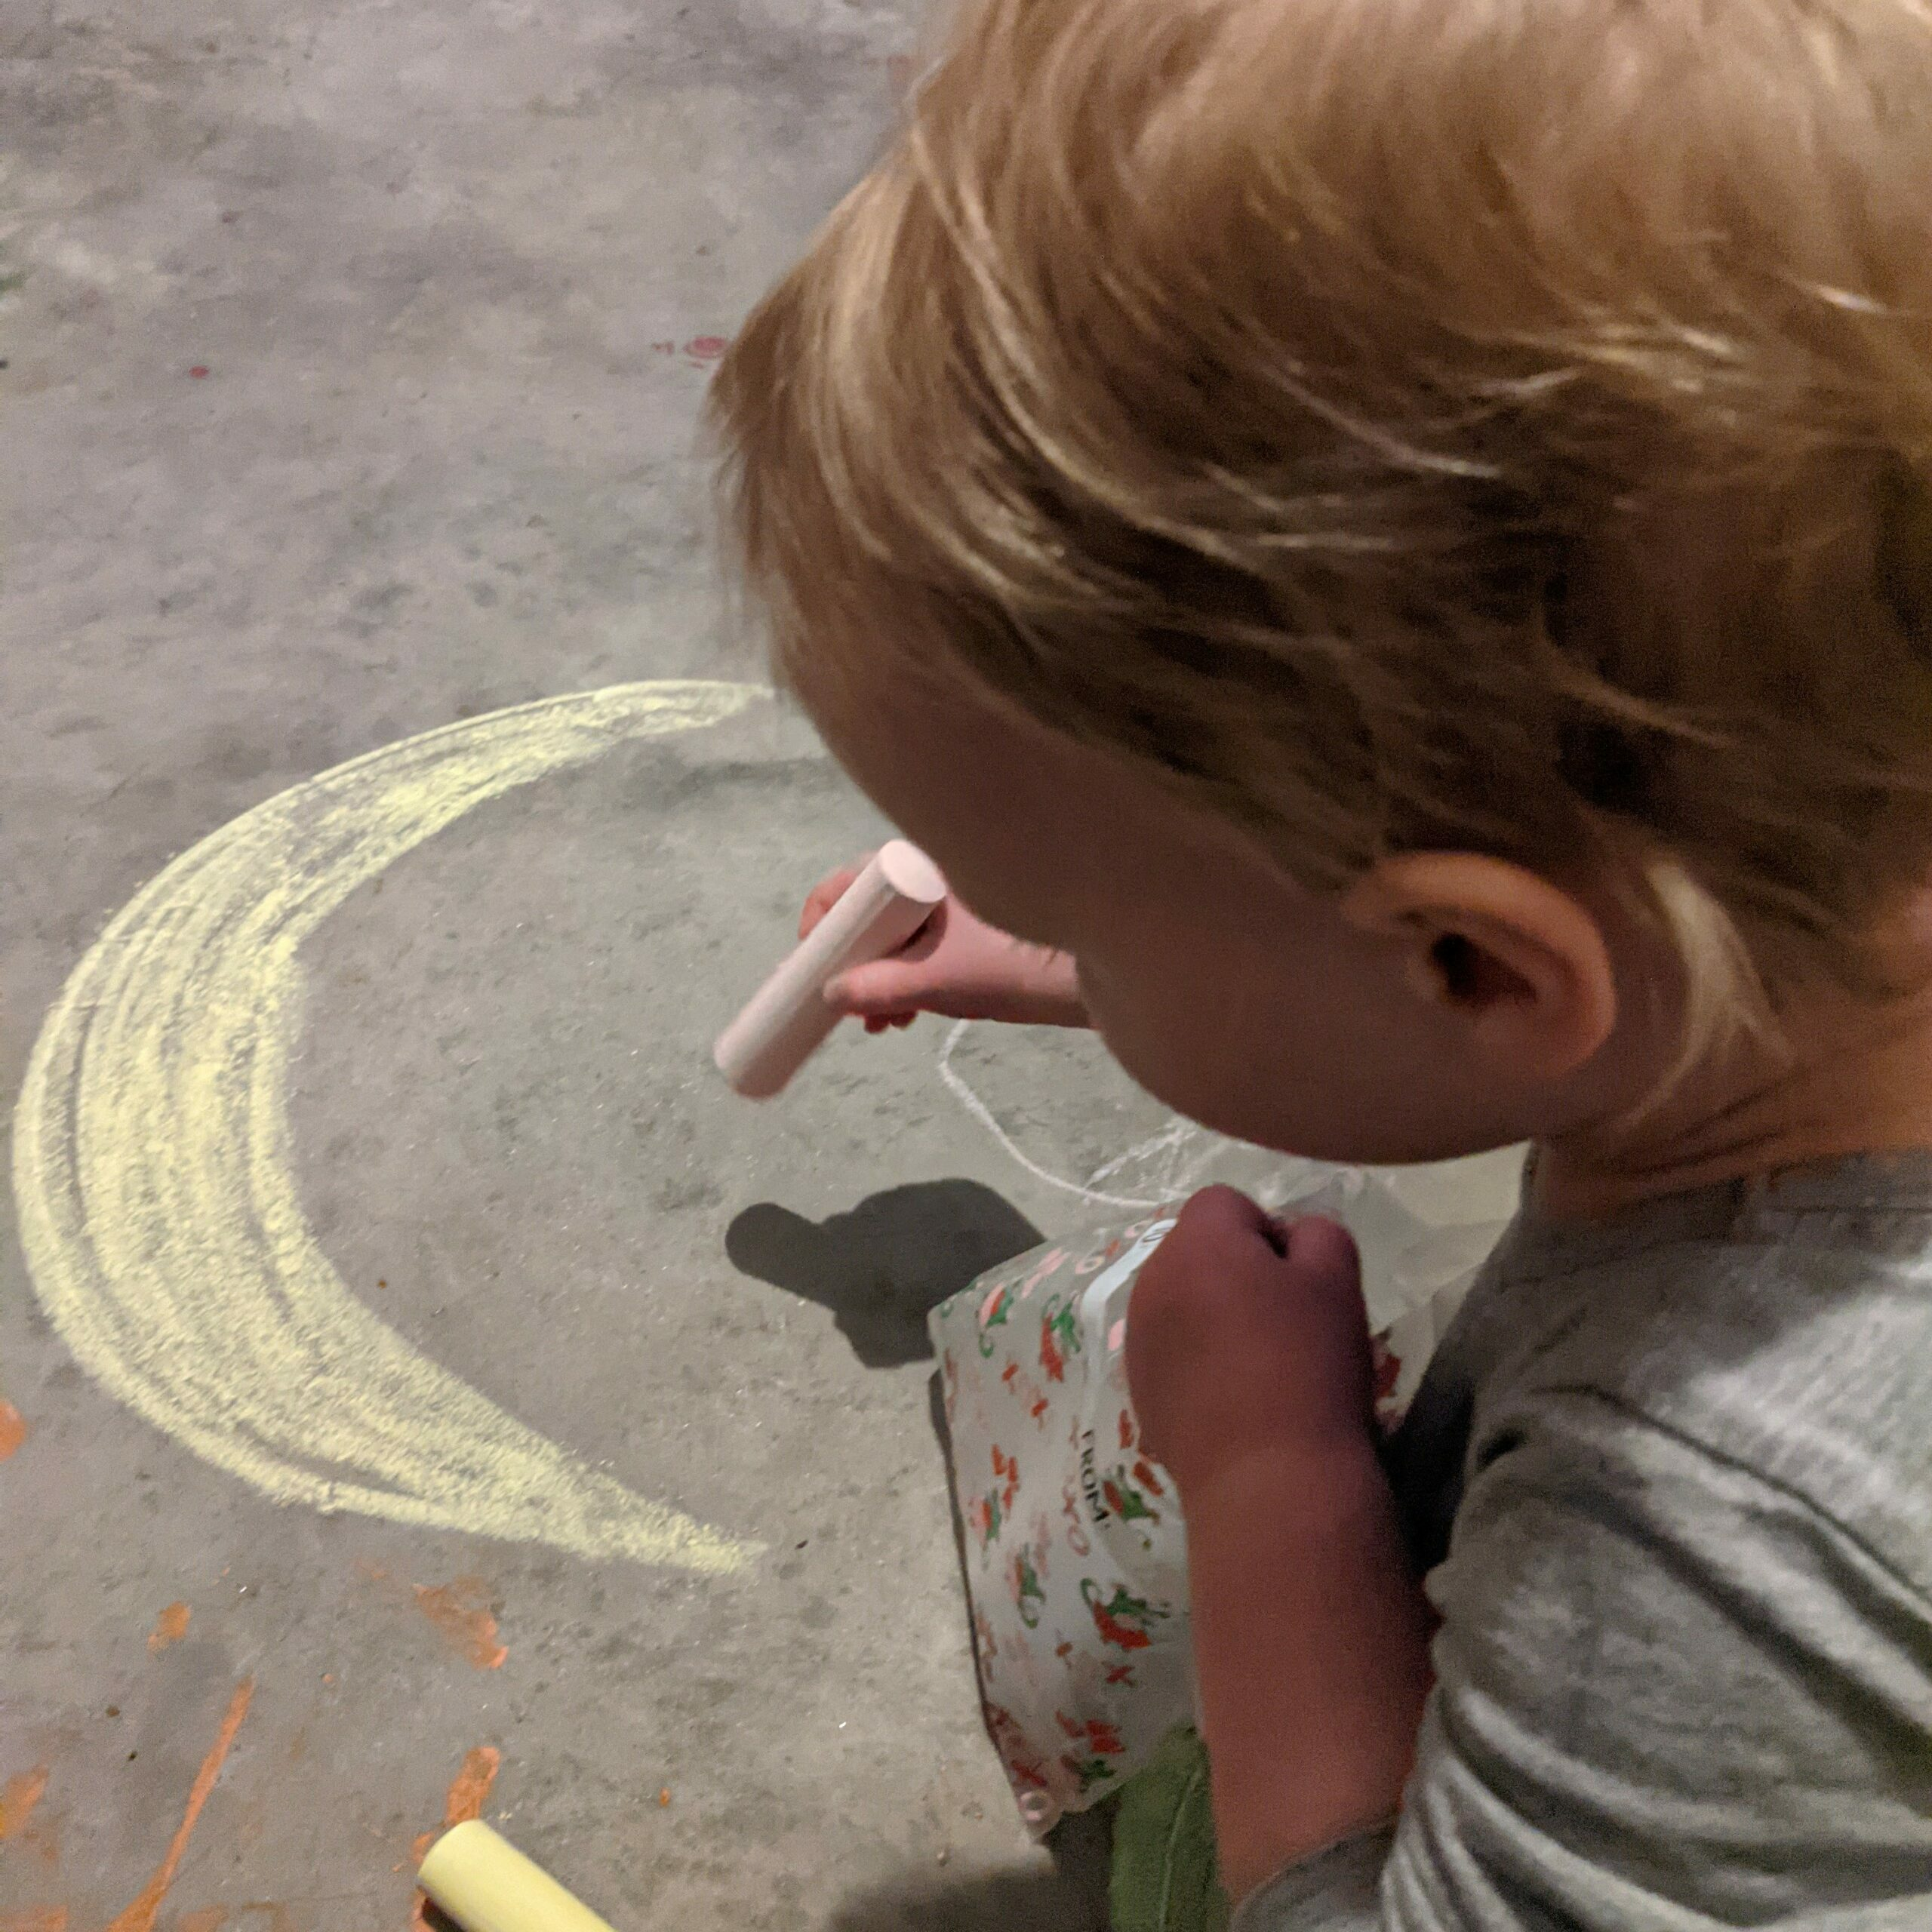 A child draws with chalk, moon, focus, drawing, art, expression